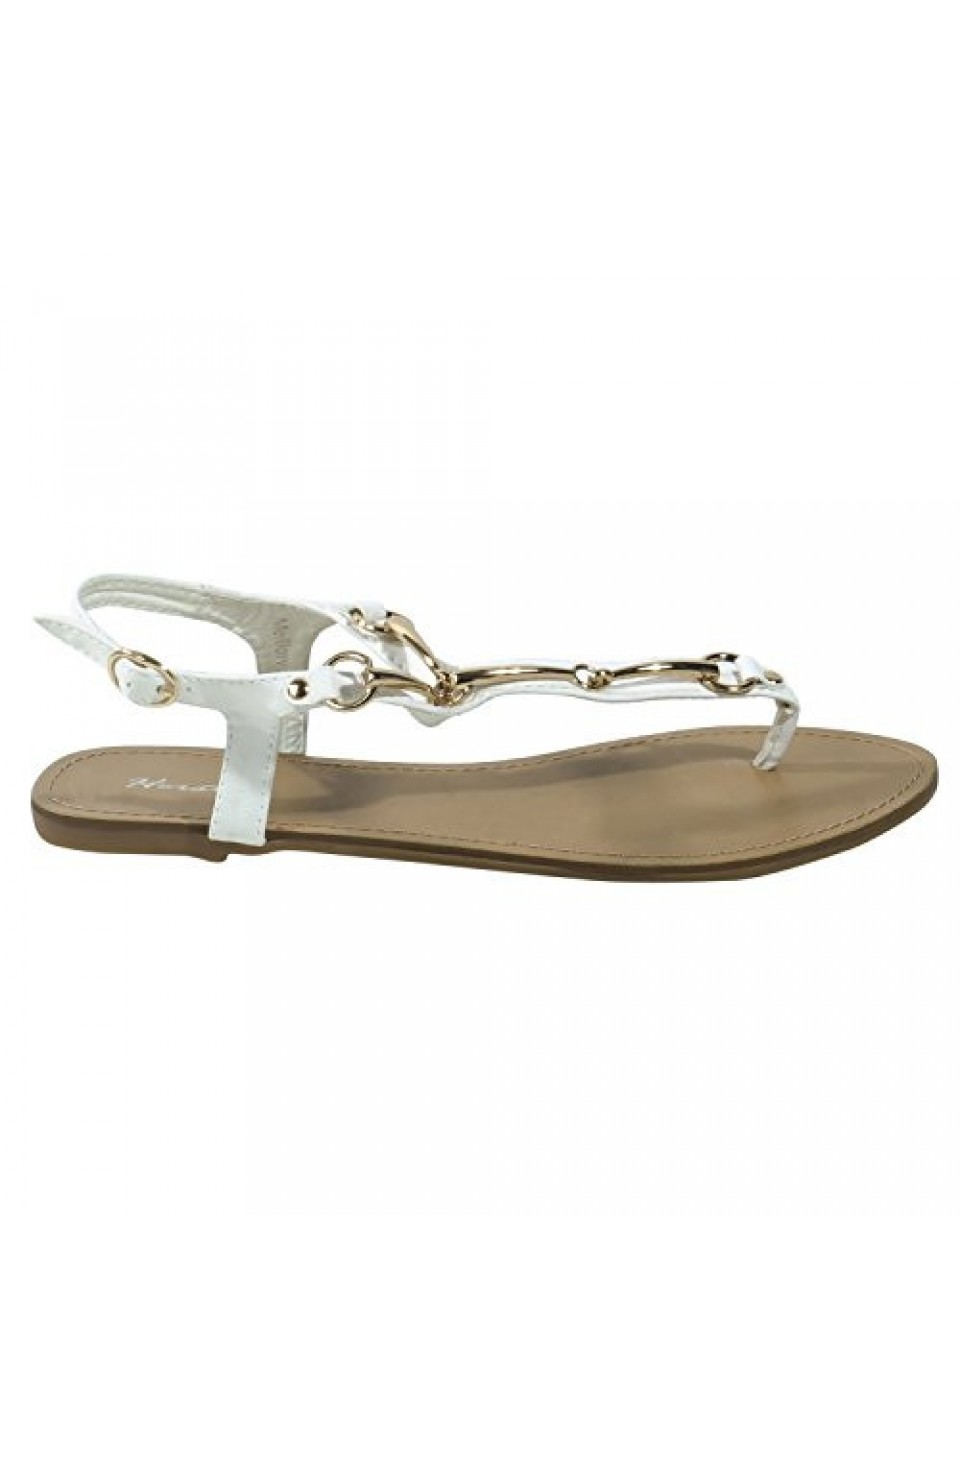 Women's White Manmade Melllow Ankle Strap Sandal with Gold-Tone Curved Accents